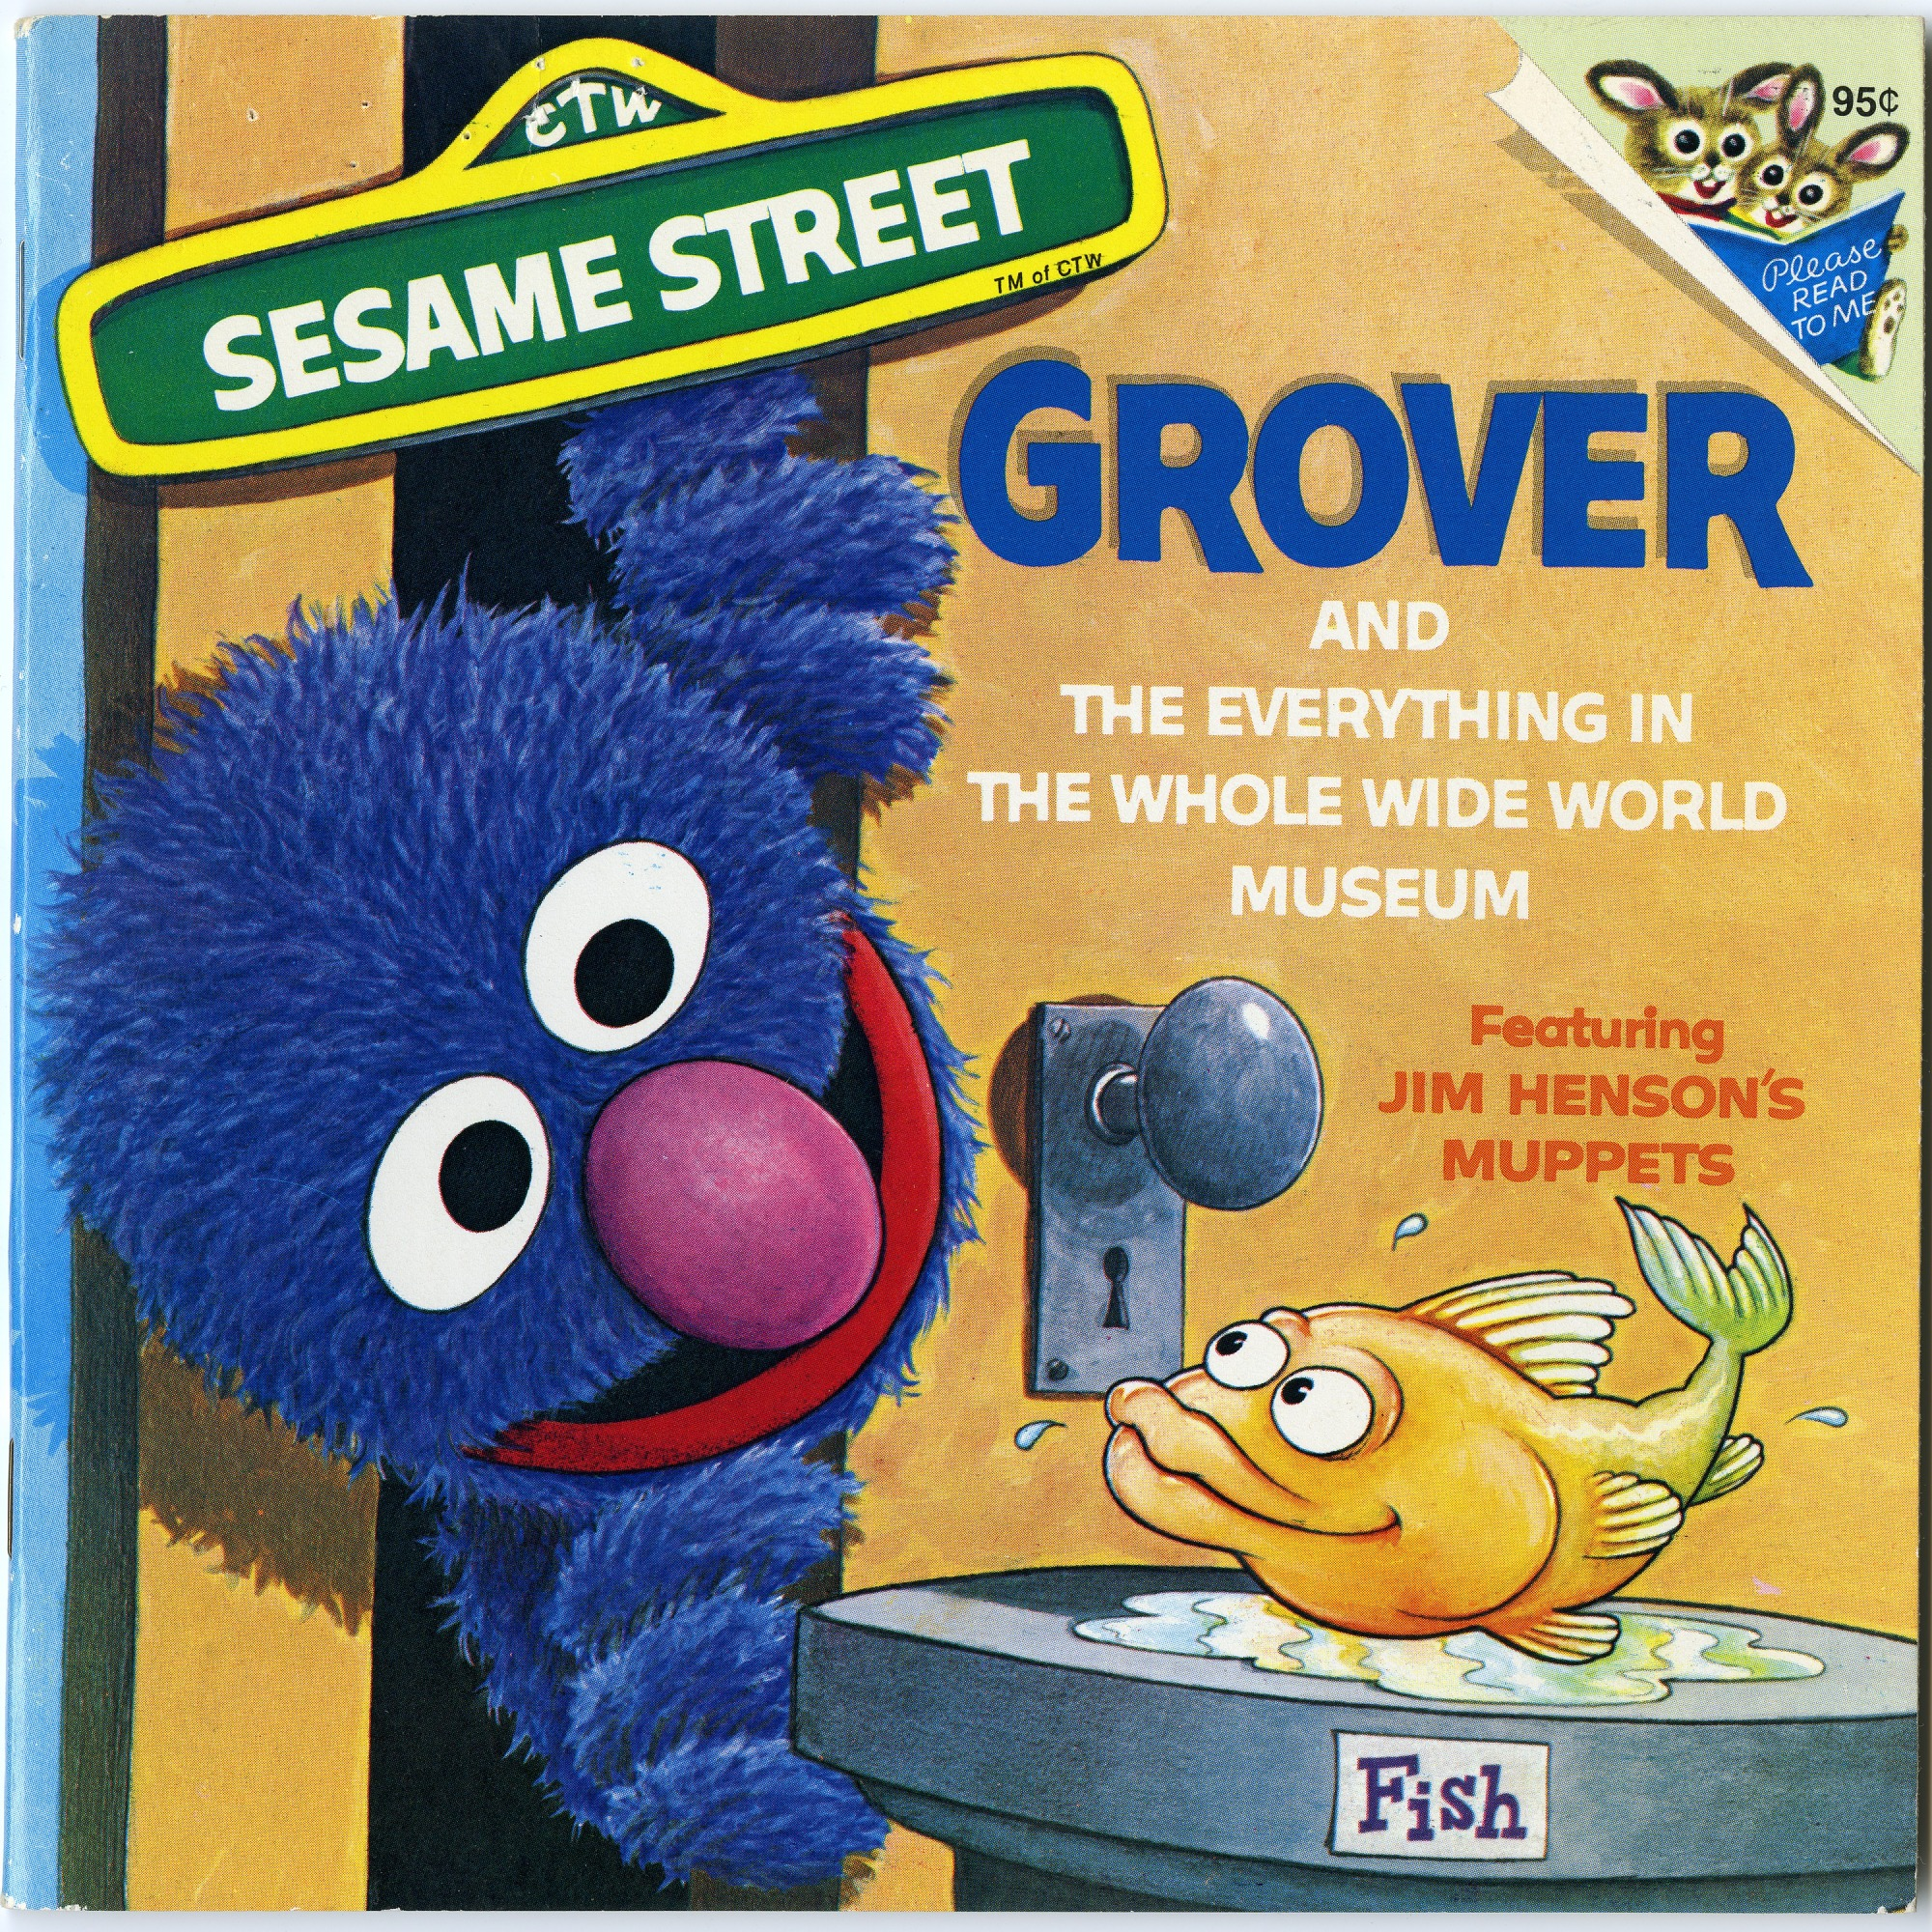 Jun 1 Sesame Street: Grover and the Everything in the Whole Wide World Museum